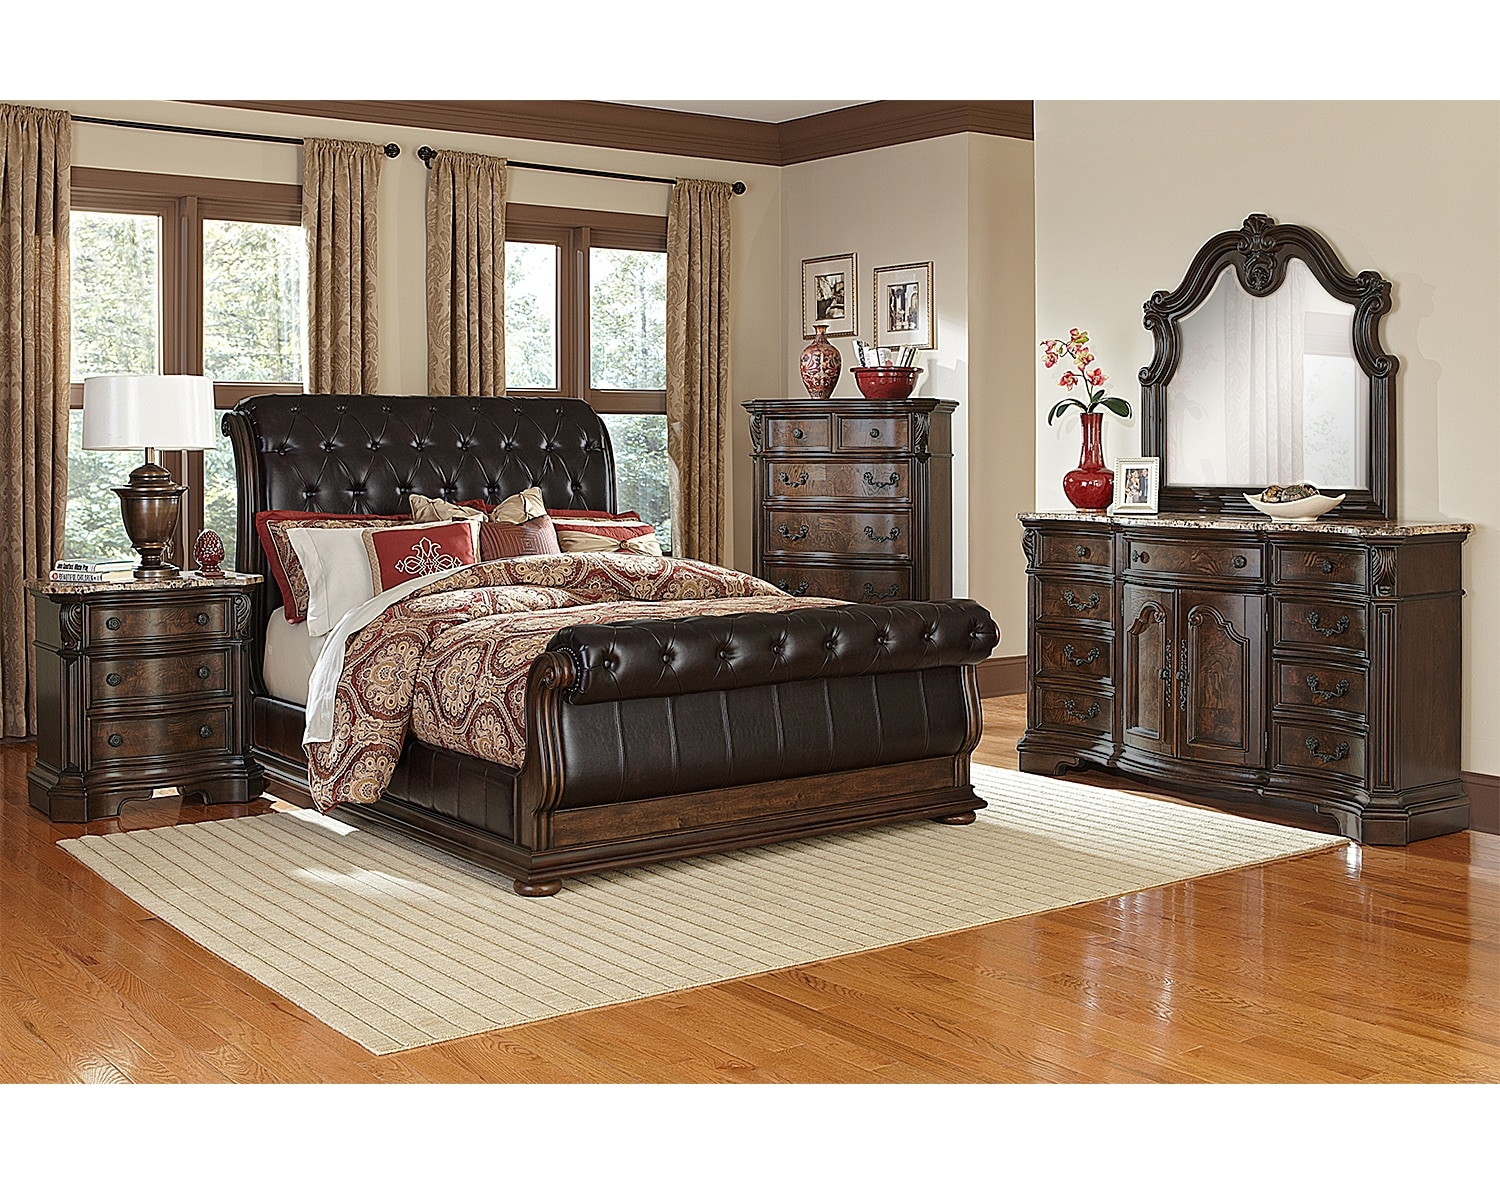 The Monticello Sleigh Bedroom Collection   Pecan. The Monticello Sleigh Bedroom Collection   Pecan   American